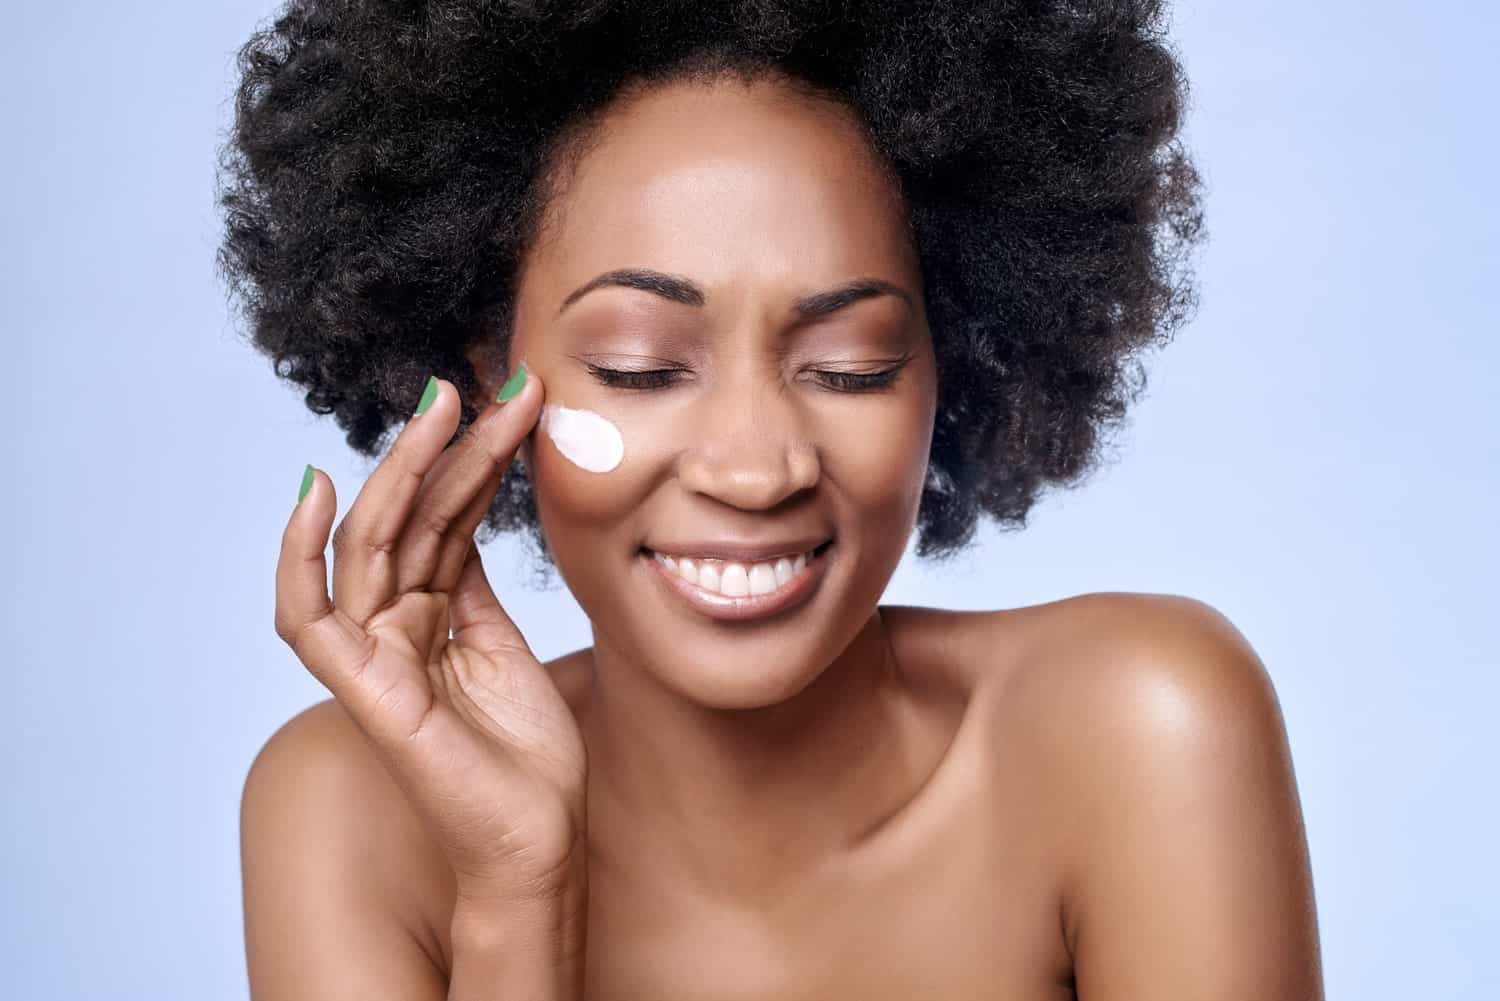 lady applying face cream - digital marketing for skincare products